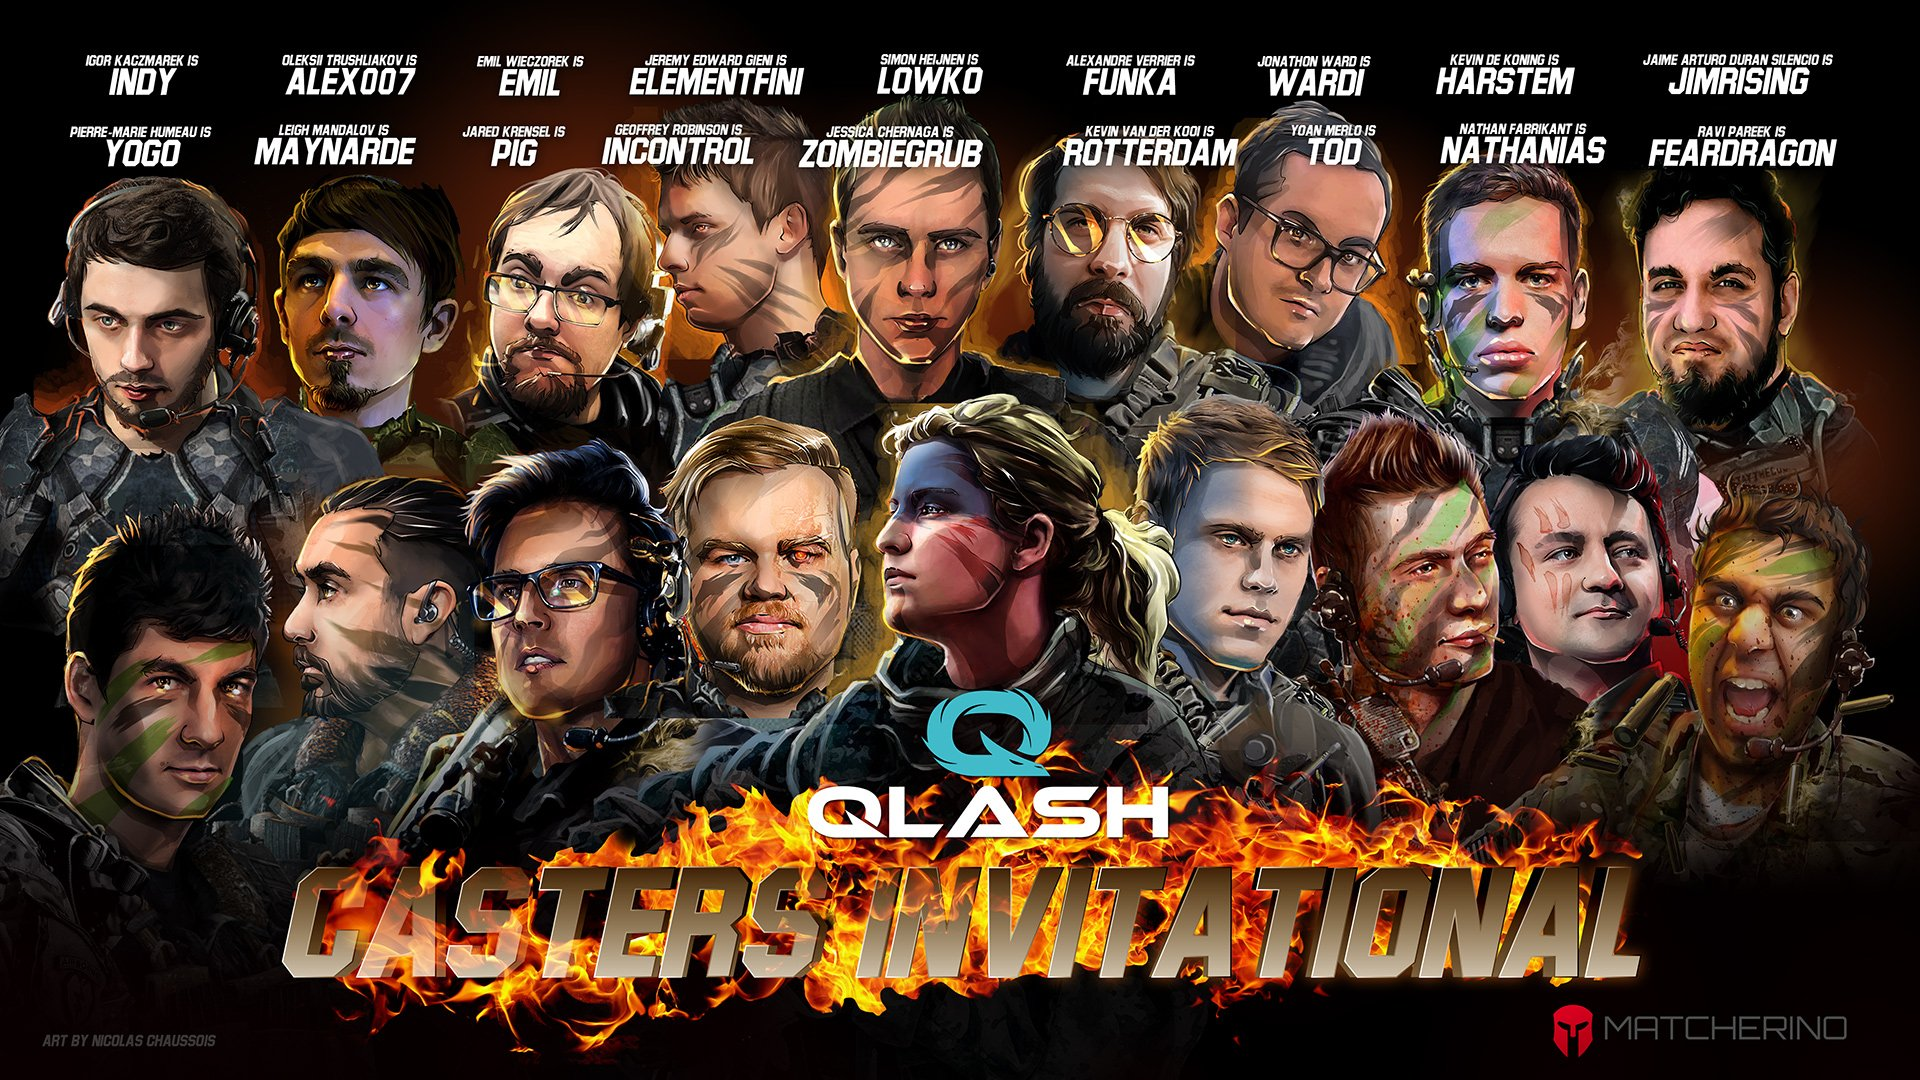 QLASH Casters Invitational